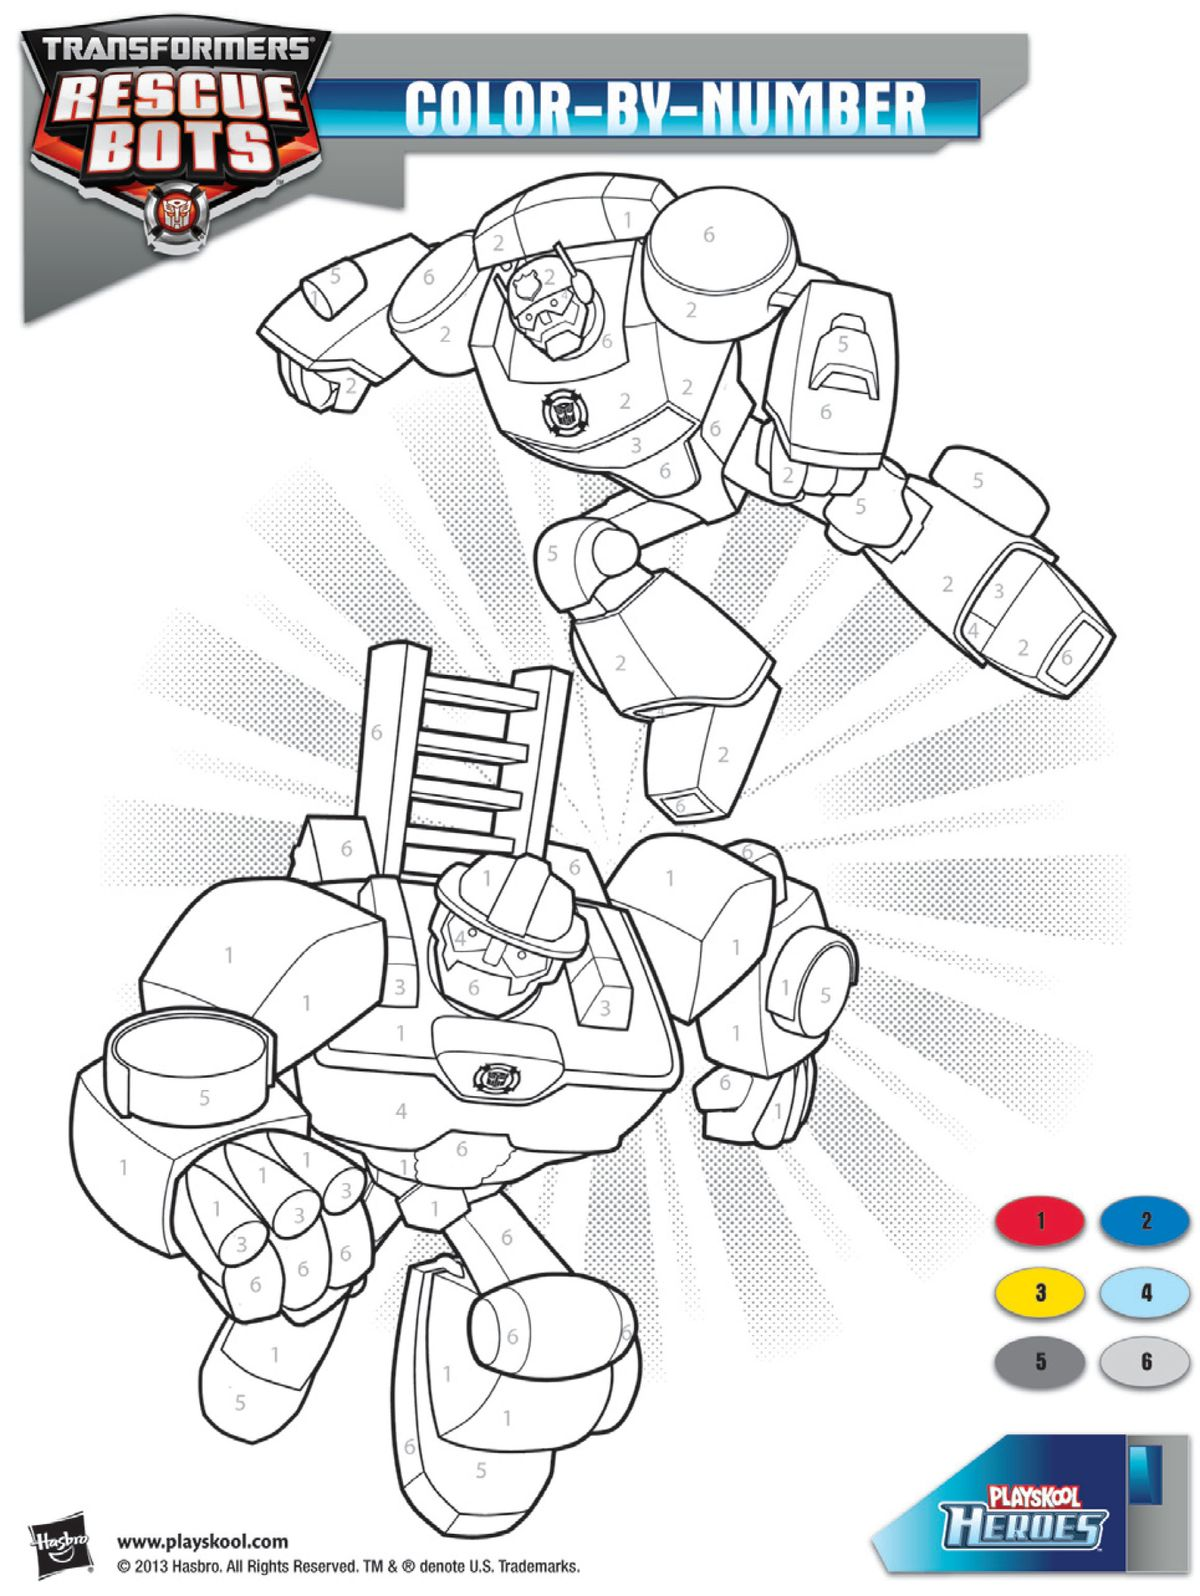 Transformers Rescue Bots Color By Number